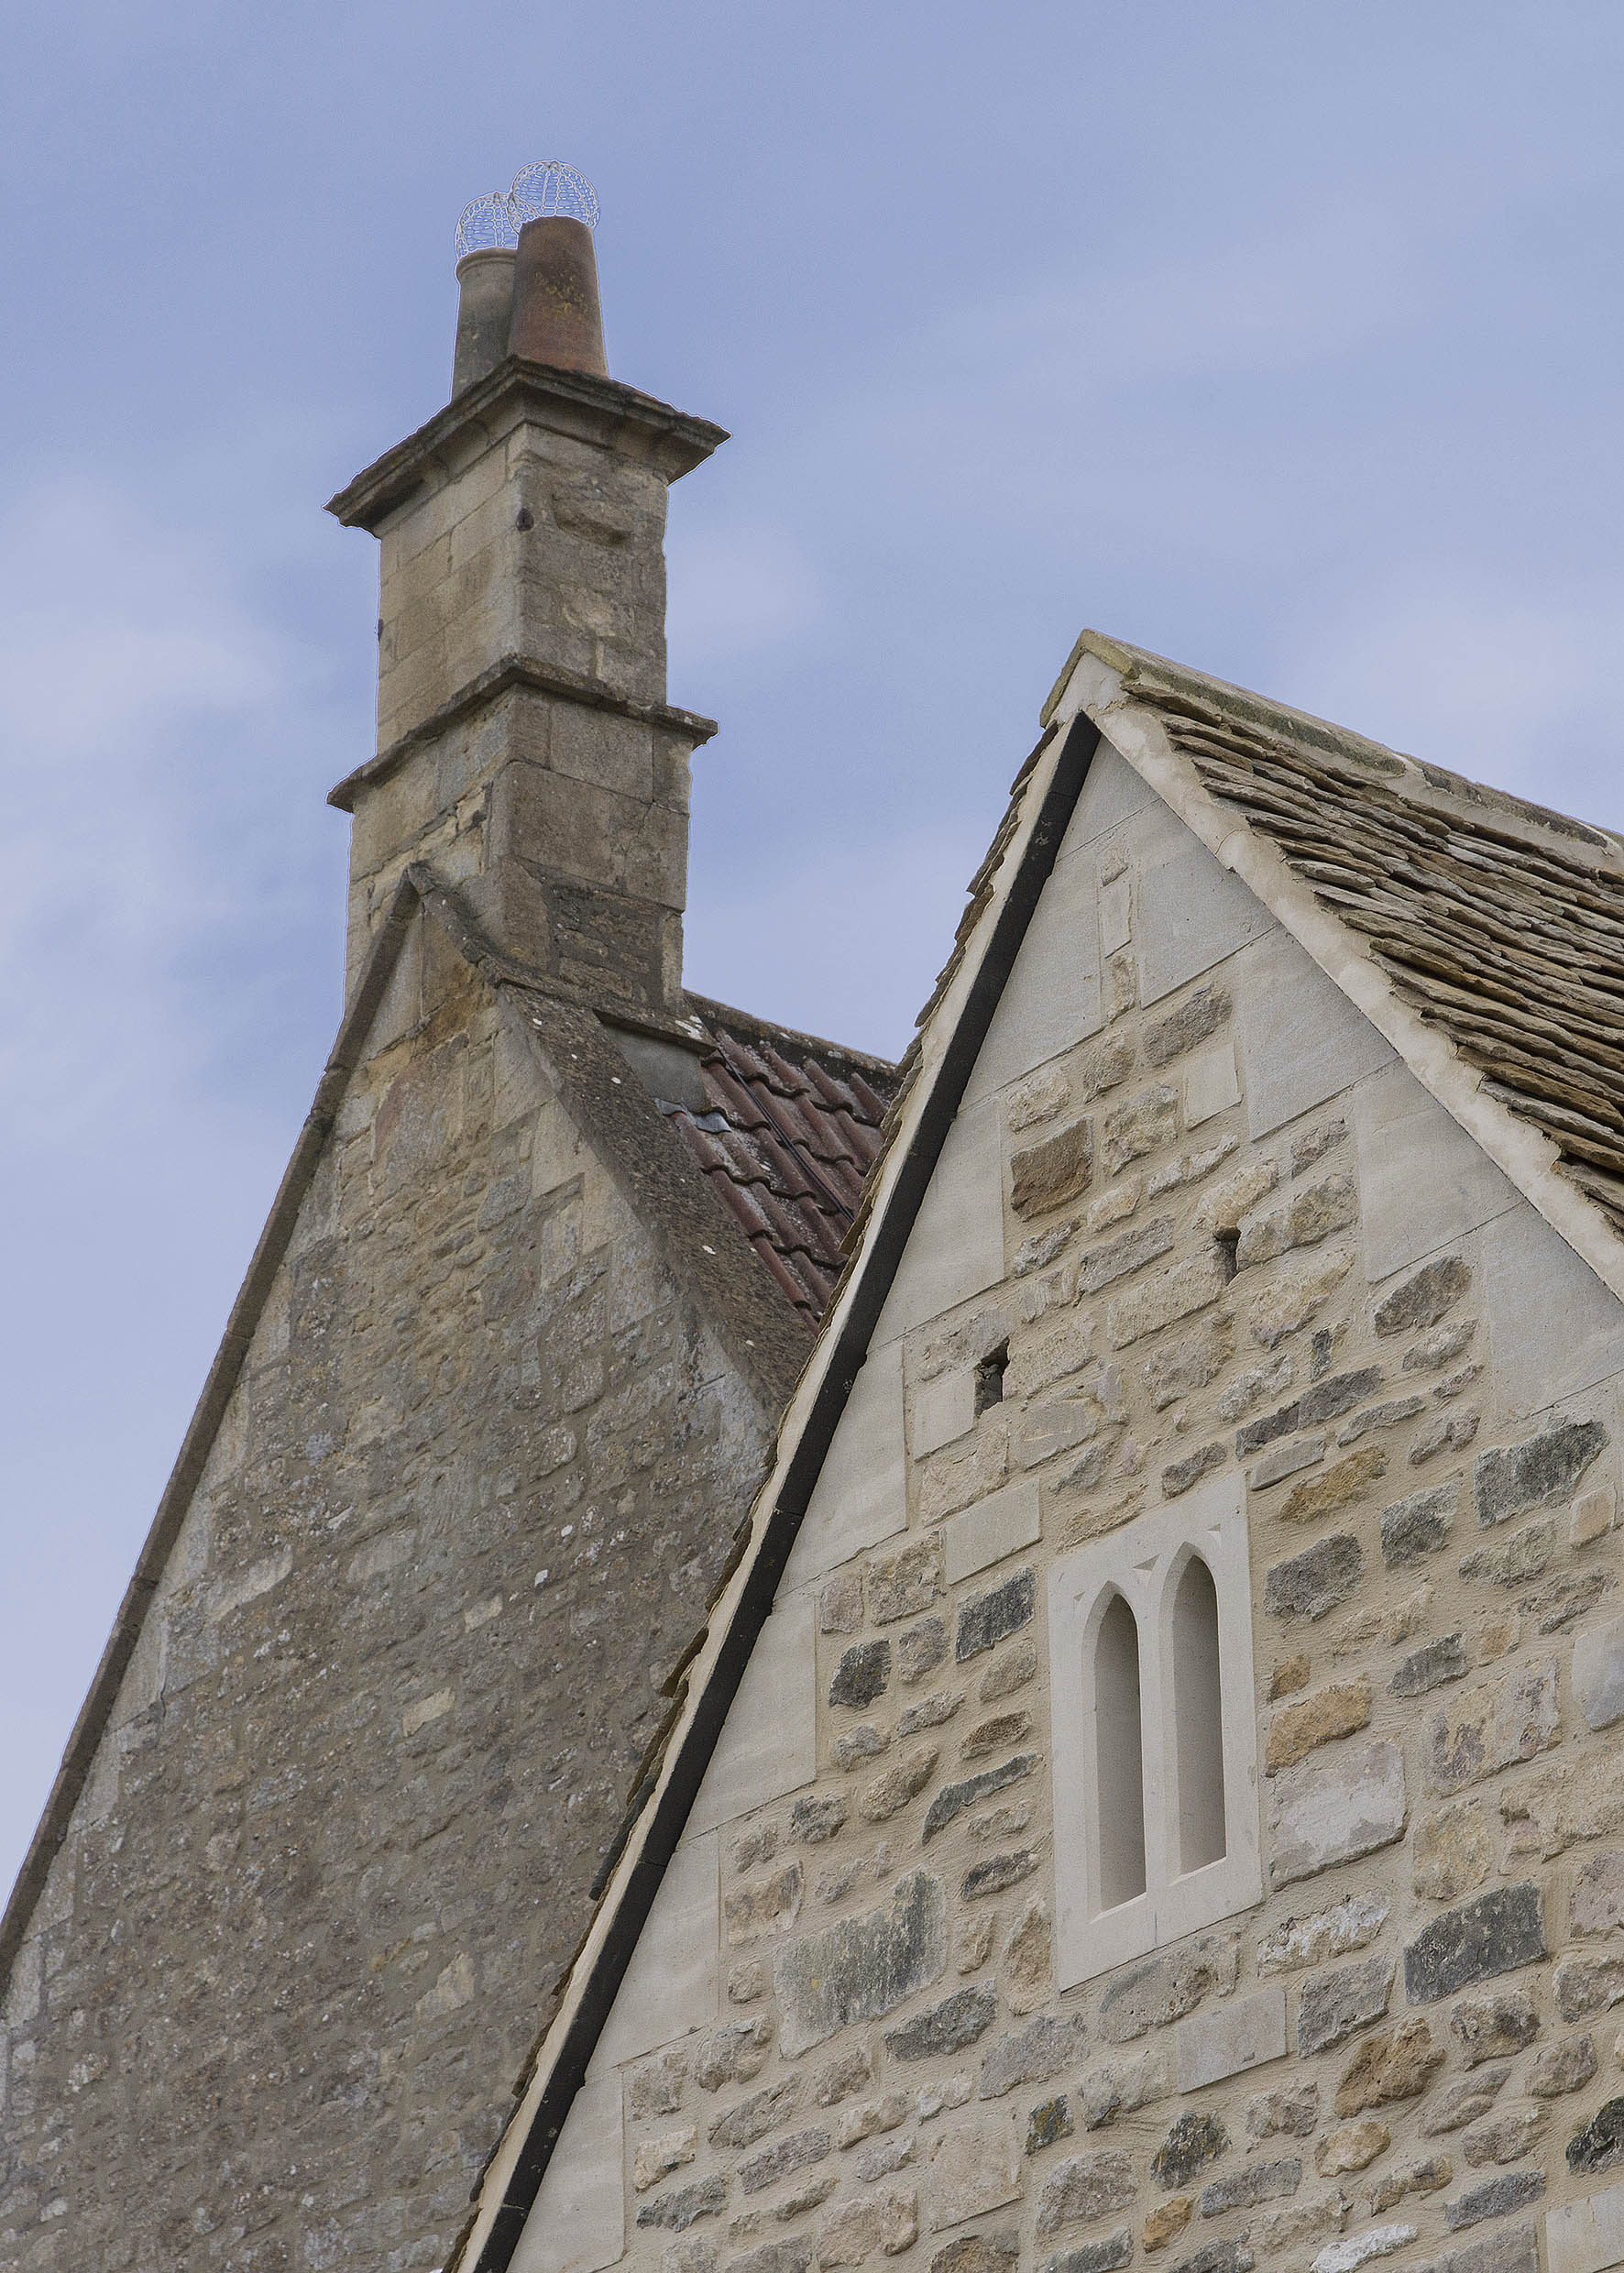 Cotswold stone gable